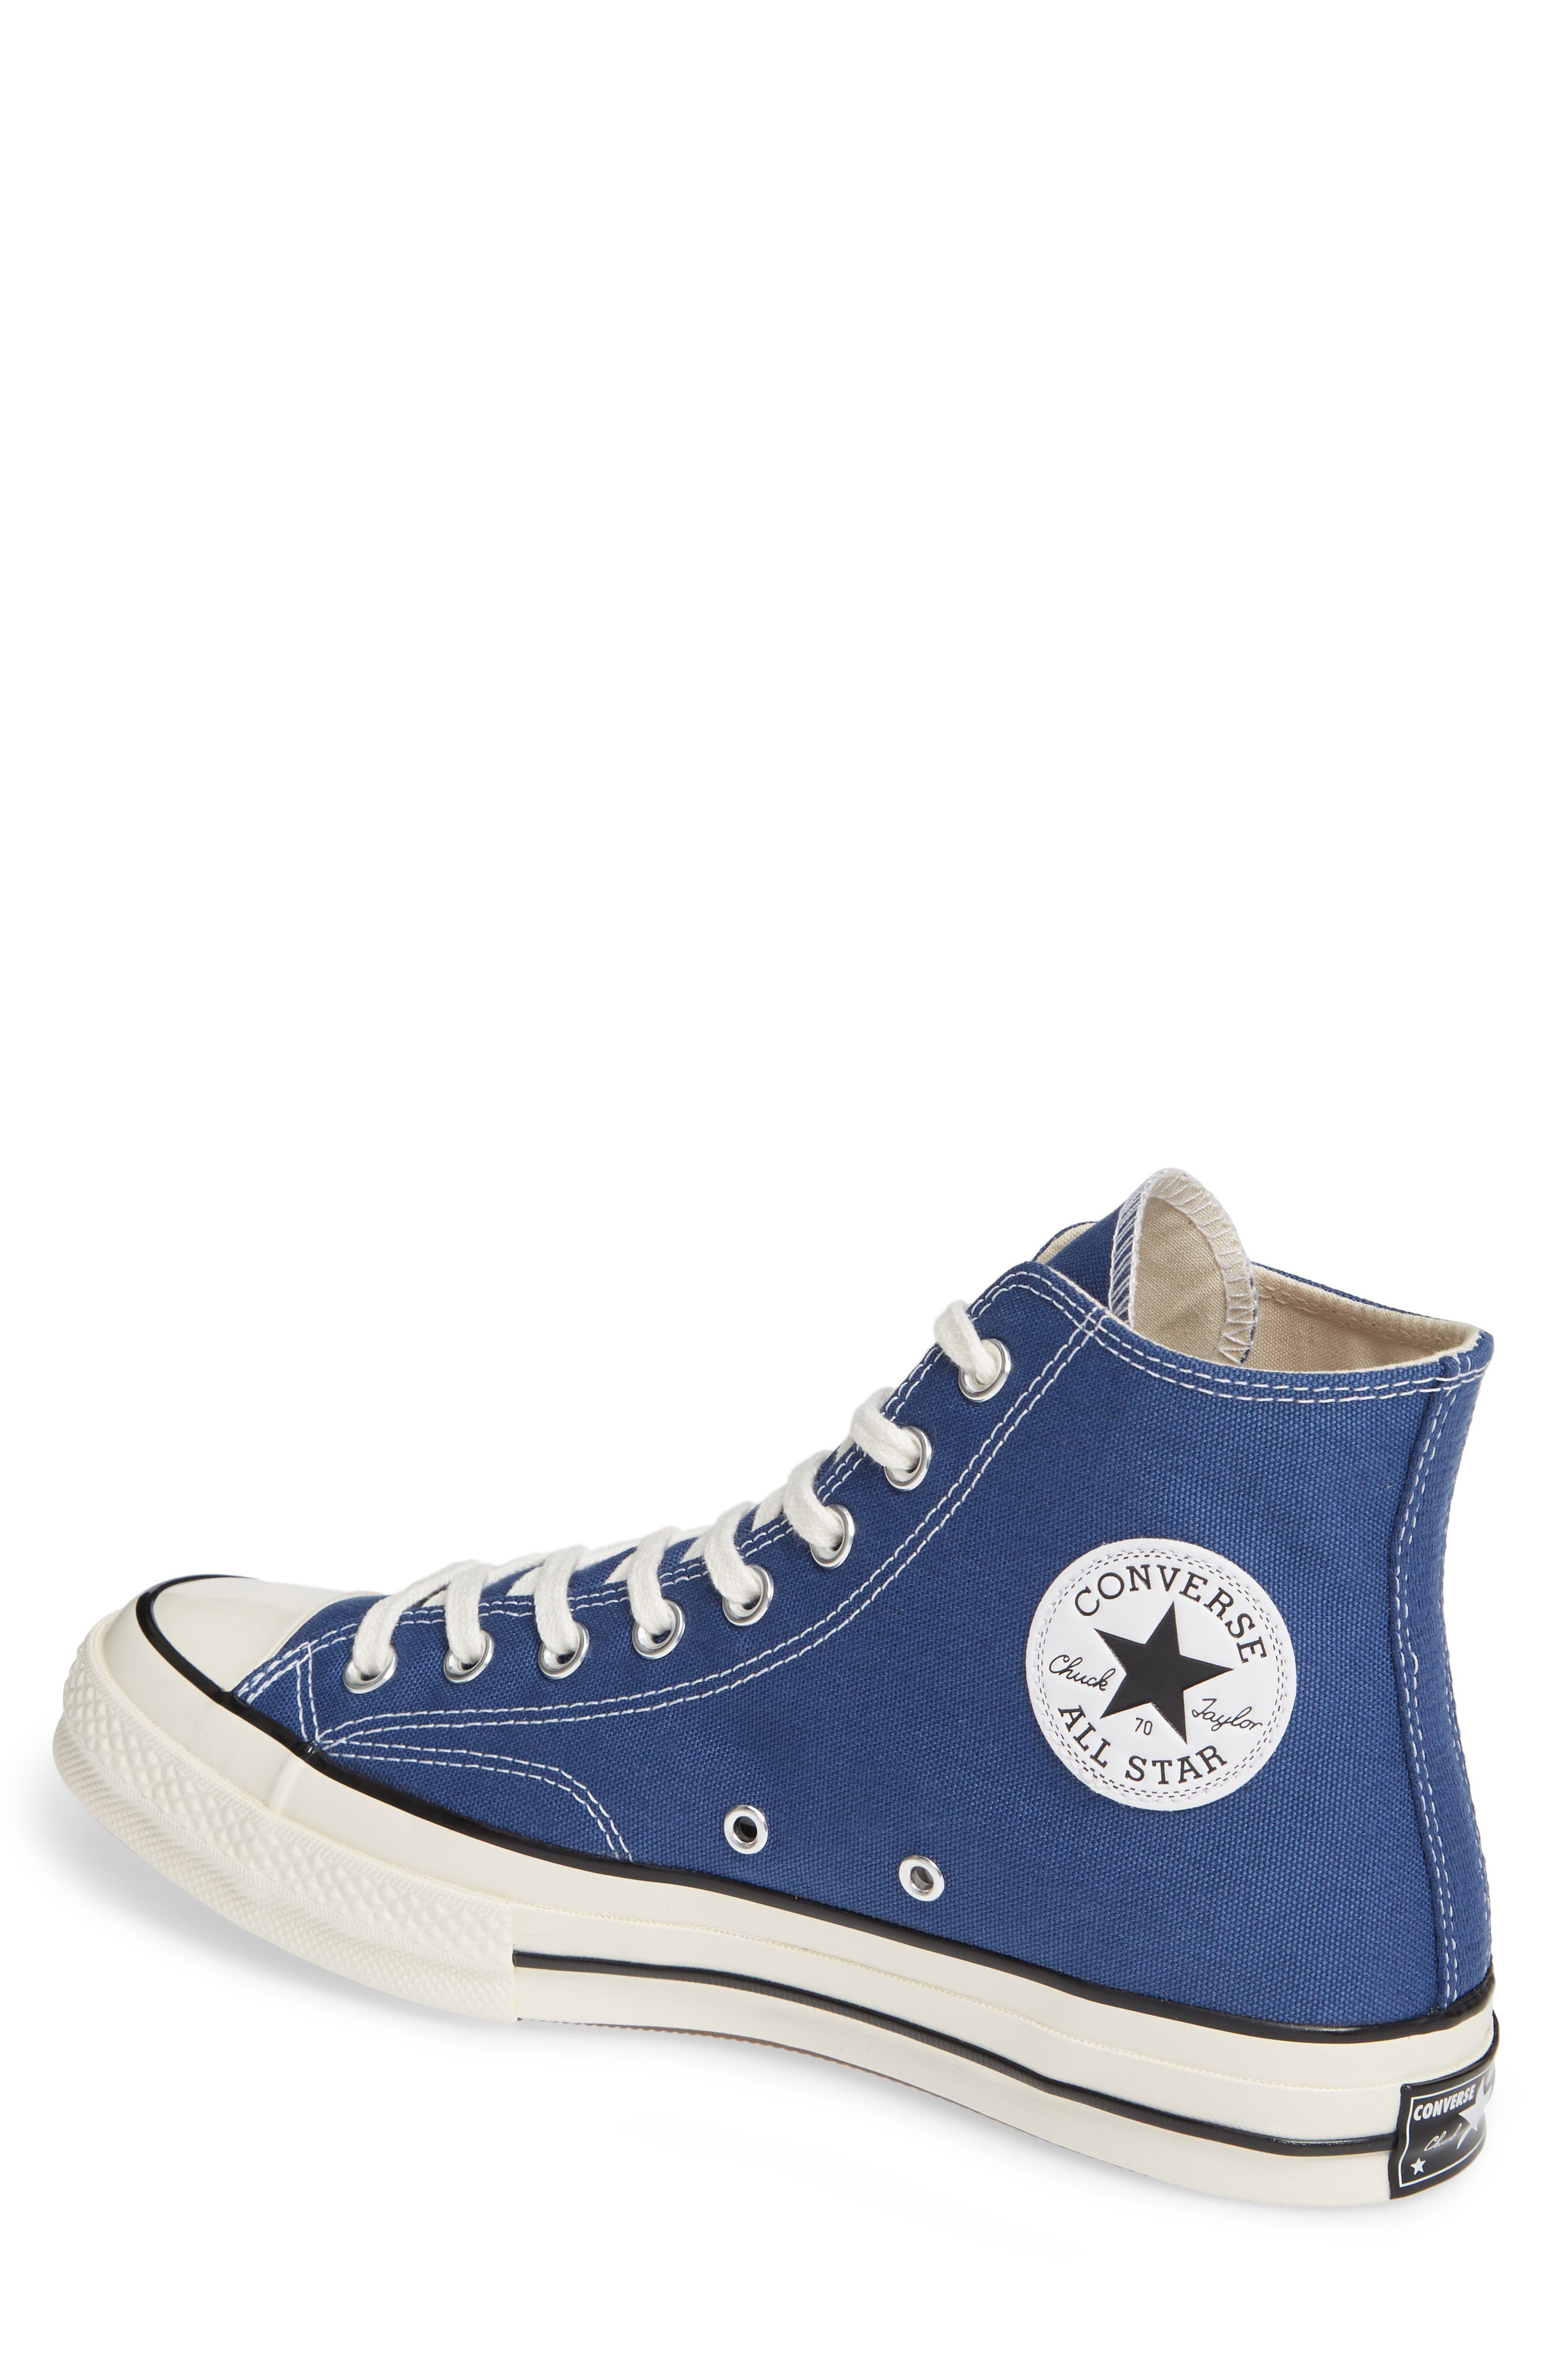 CONVERSE, Chuck Taylor<sup>®</sup> All Star<sup>®</sup> 70 Vintage High Top Sneaker, Alternate thumbnail 2, color, TRUE NAVY/ BLACK